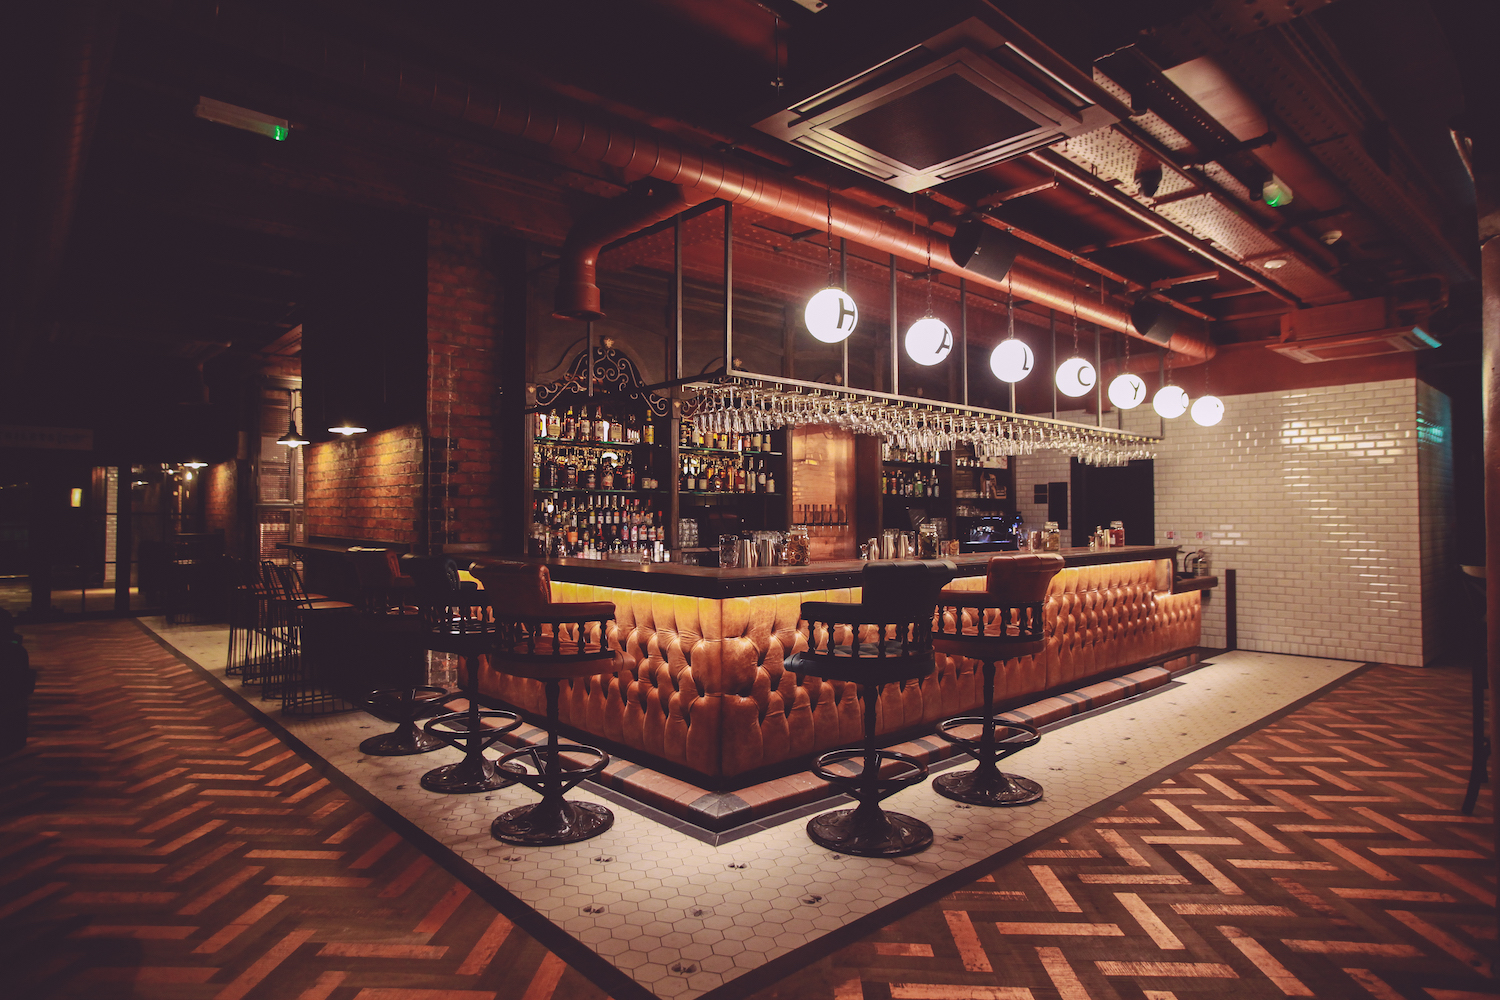 Manchester Made, Zymurgorium, Launch Their First Cocktail Bar And Distillery Based At The Old Granada Studio photo